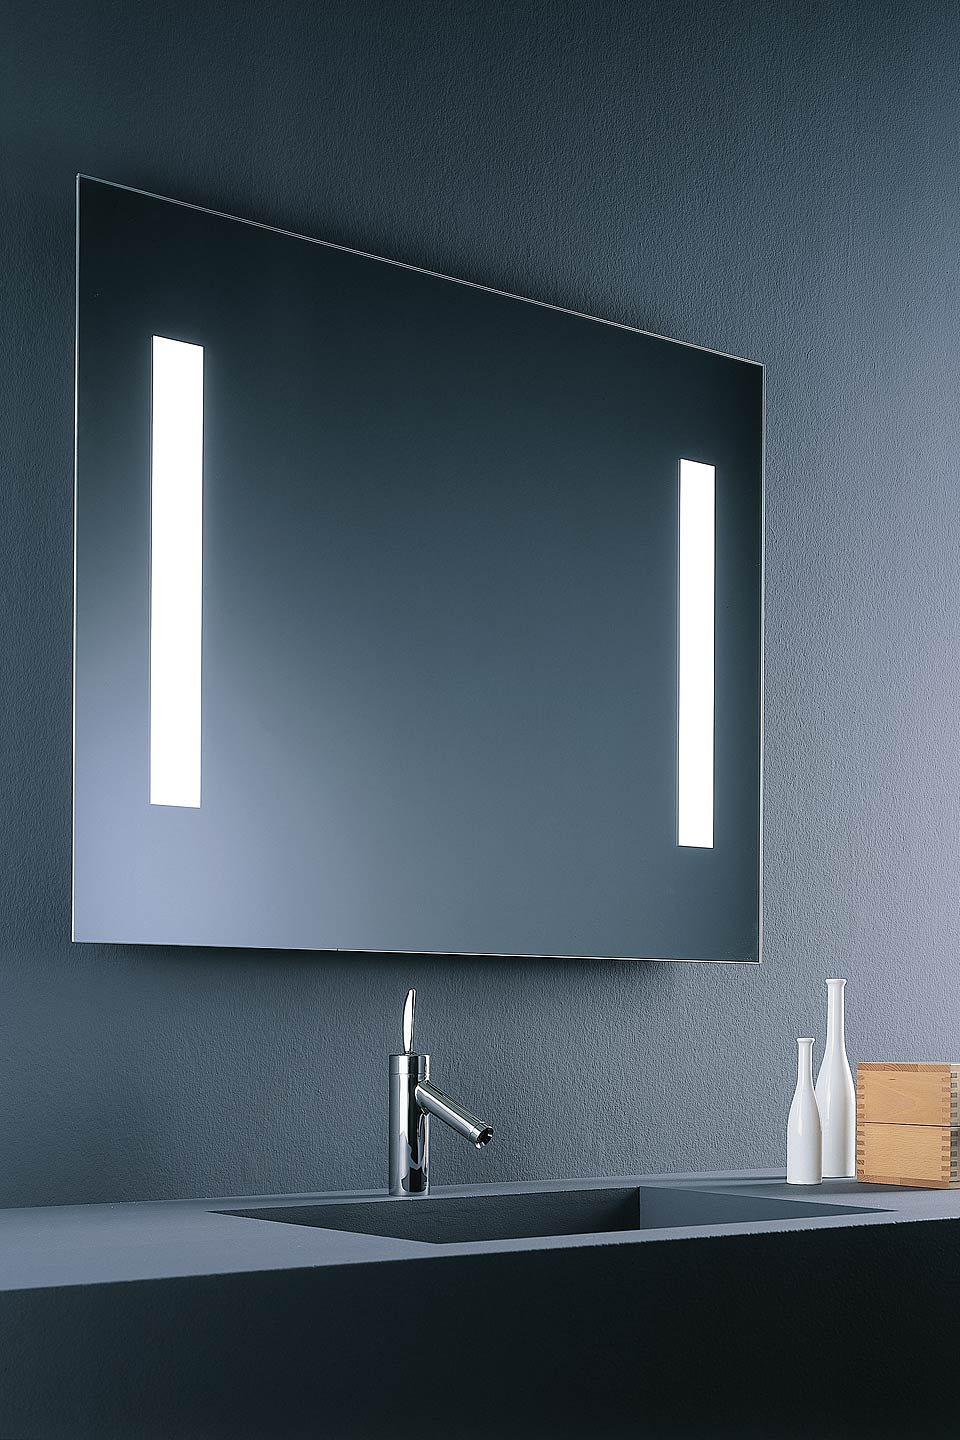 miroir carr lumineux double fluo en face avant baulmann leuchten luminaire de prestige. Black Bedroom Furniture Sets. Home Design Ideas